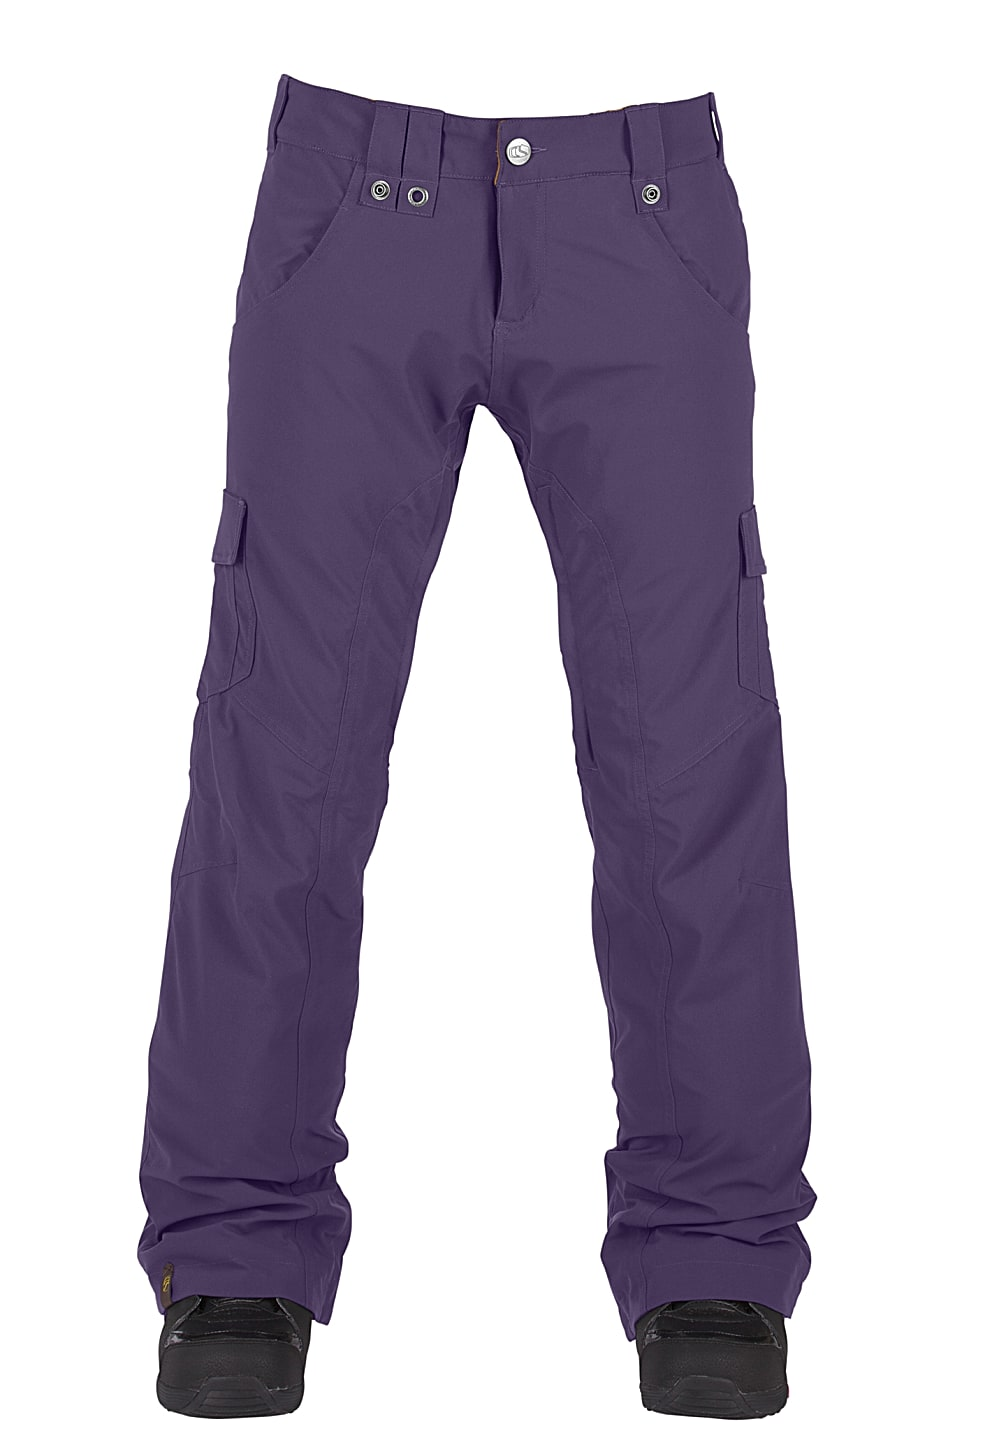 BONFIRE Heavenly Solid - Snowboardhose für Damen - Lila - XS